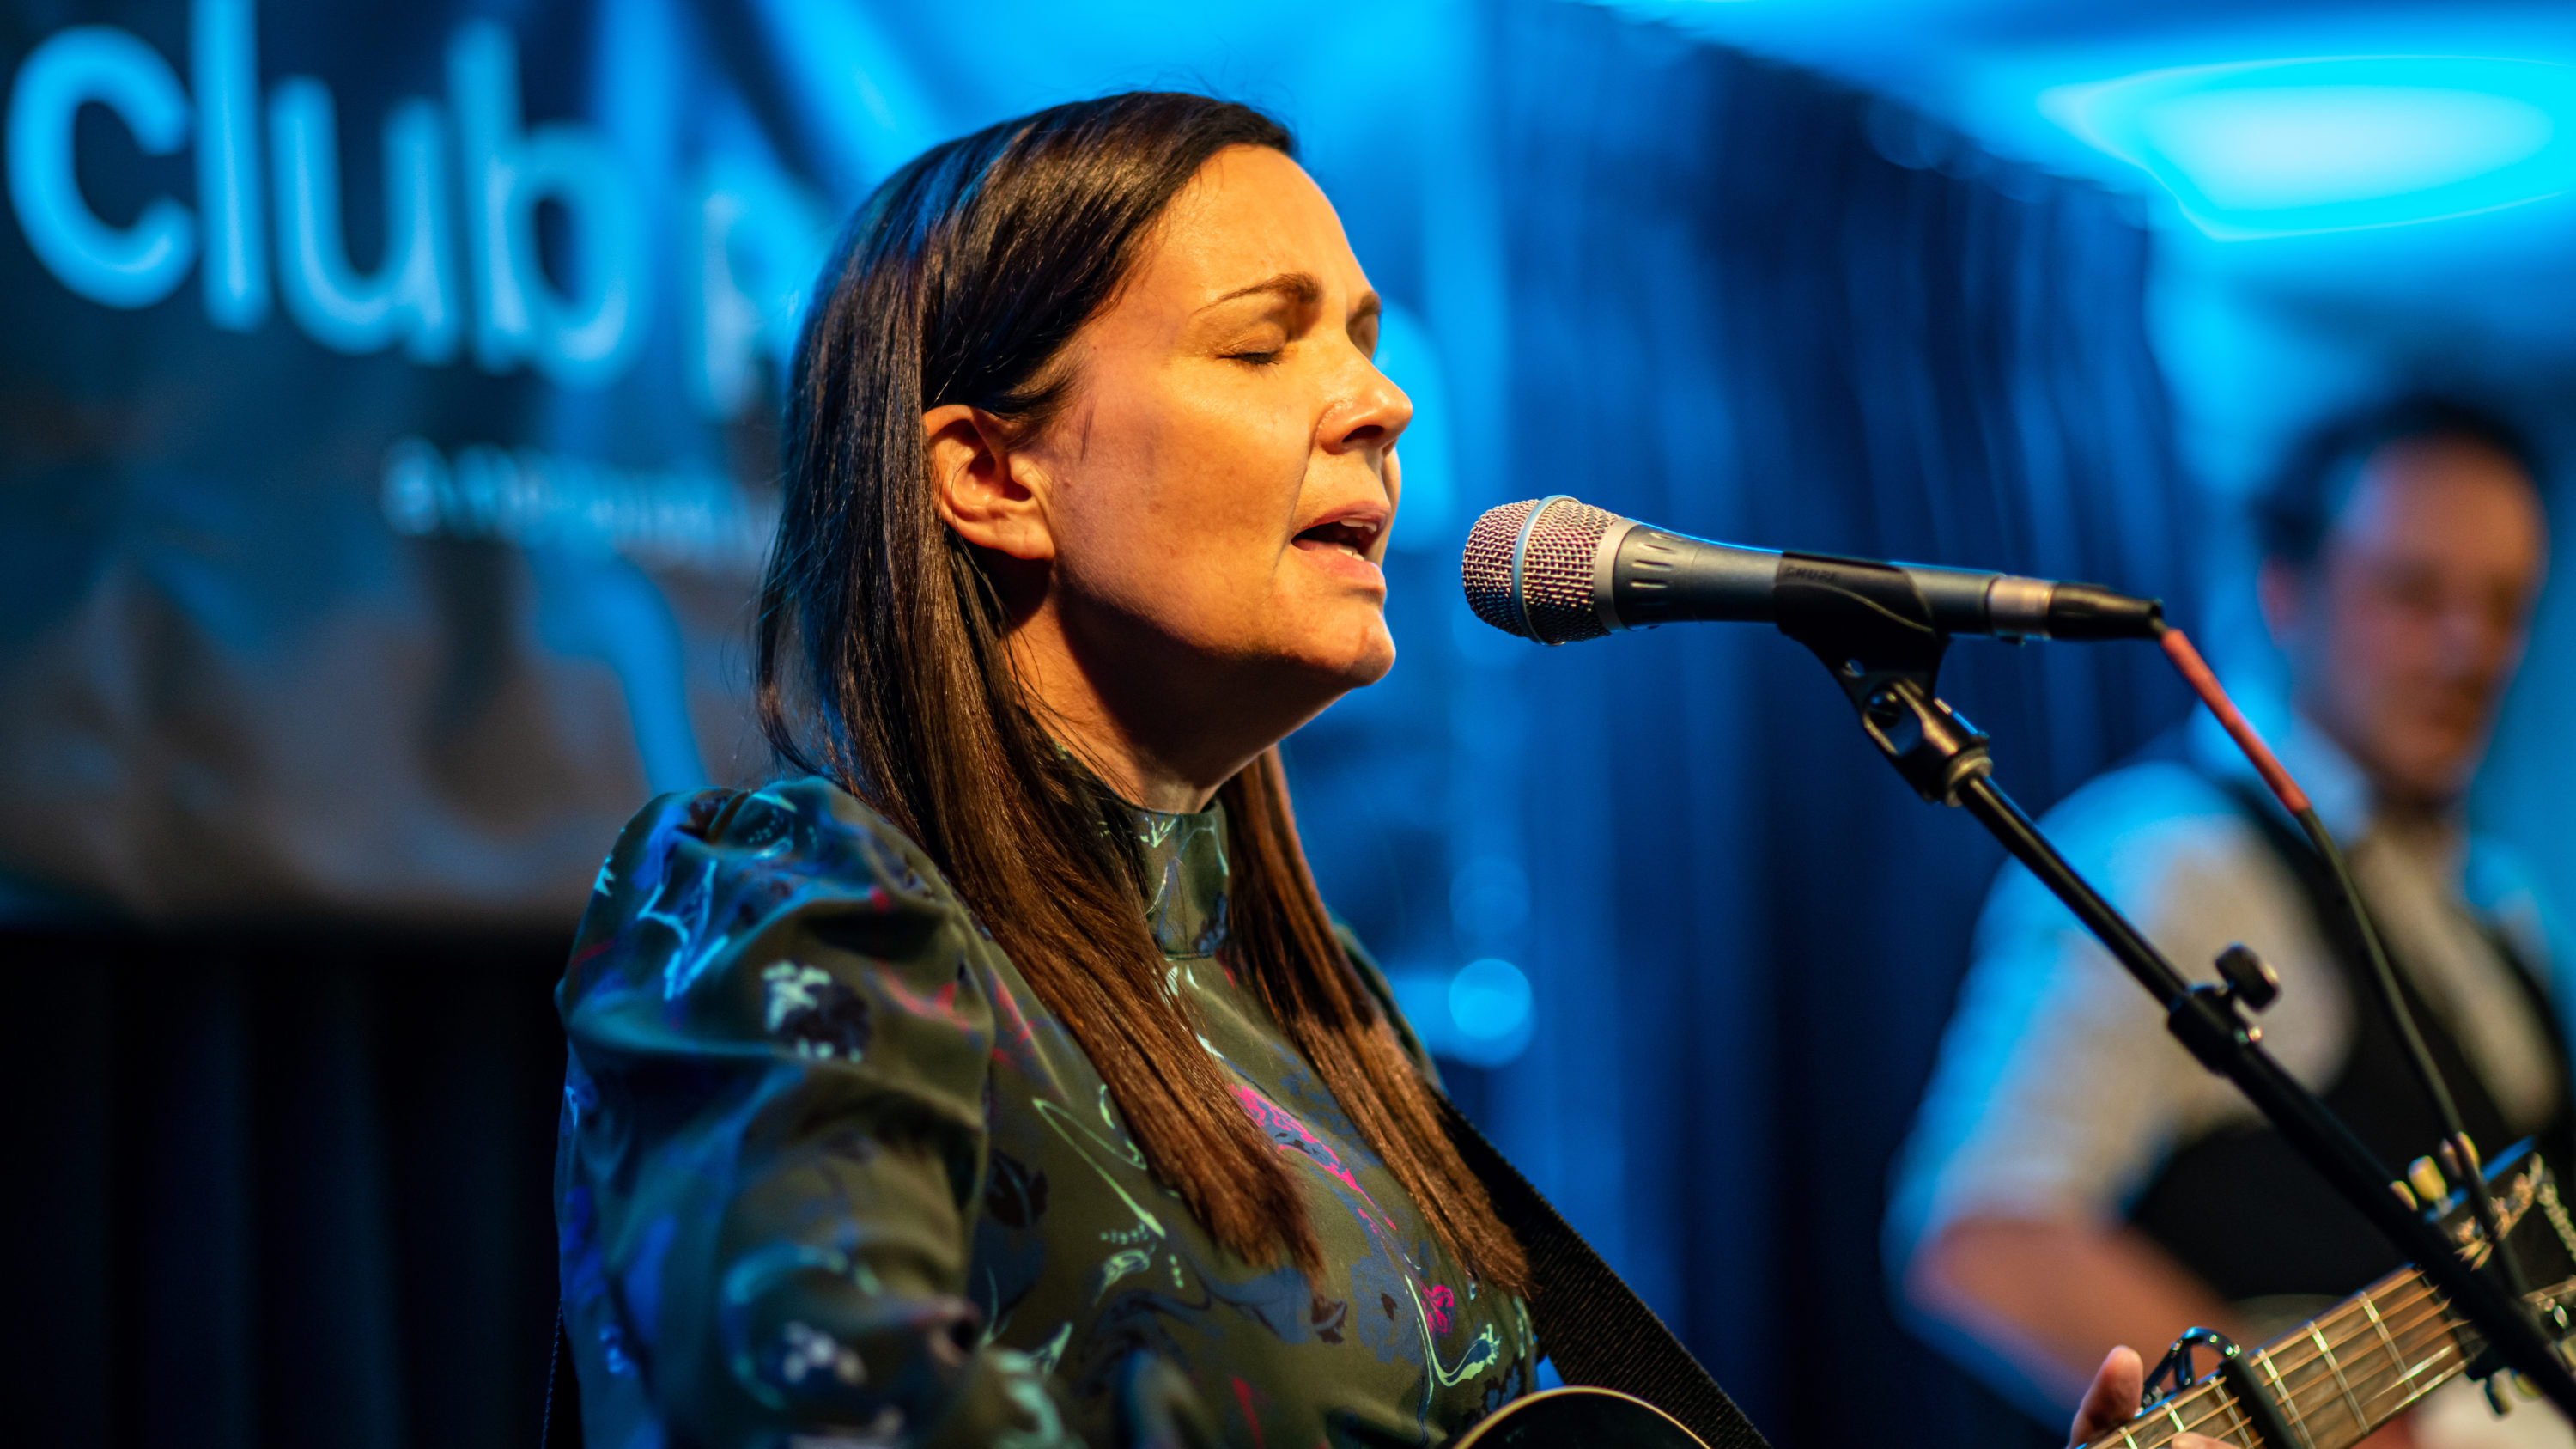 """Singer-songwriter Lori McKenna performing at Club Passim in July during the premiere of her album """"The Balladeer."""" (Courtesy)"""